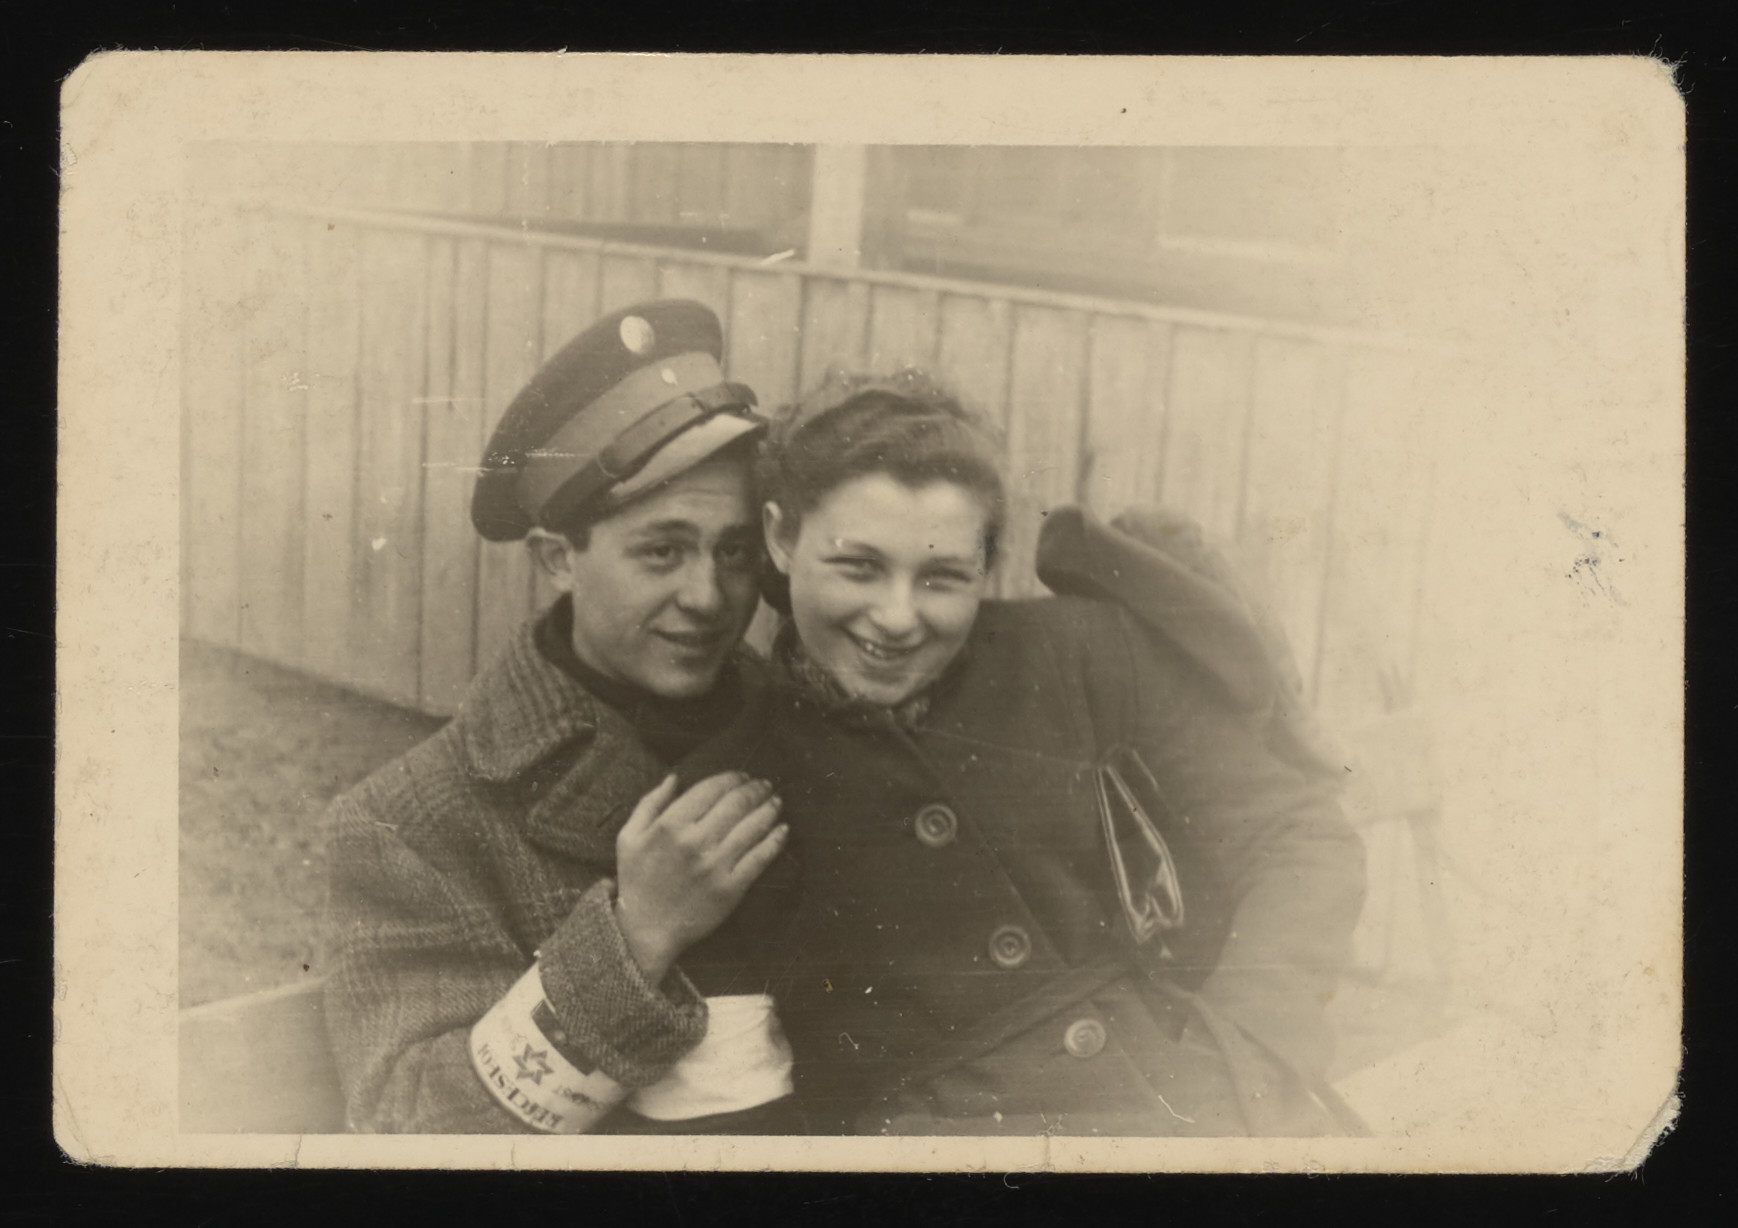 A Jewish policeman poses with his girlfriend in the Rzeszow ghetto.  Pictured is Lonek Fisz, a Jew from Kolbuszowa, who was a member of the Jewish police in Rzeszow.  Lonek was caught forging passports for forty Jews who were trying to escape to Hungary.  He was killed by the Gestapo on September 12, 1942, in Nowawies along with 200 other Jews.  Naftali Saleschütz found this picture in Fisch's jacket after he was shot.